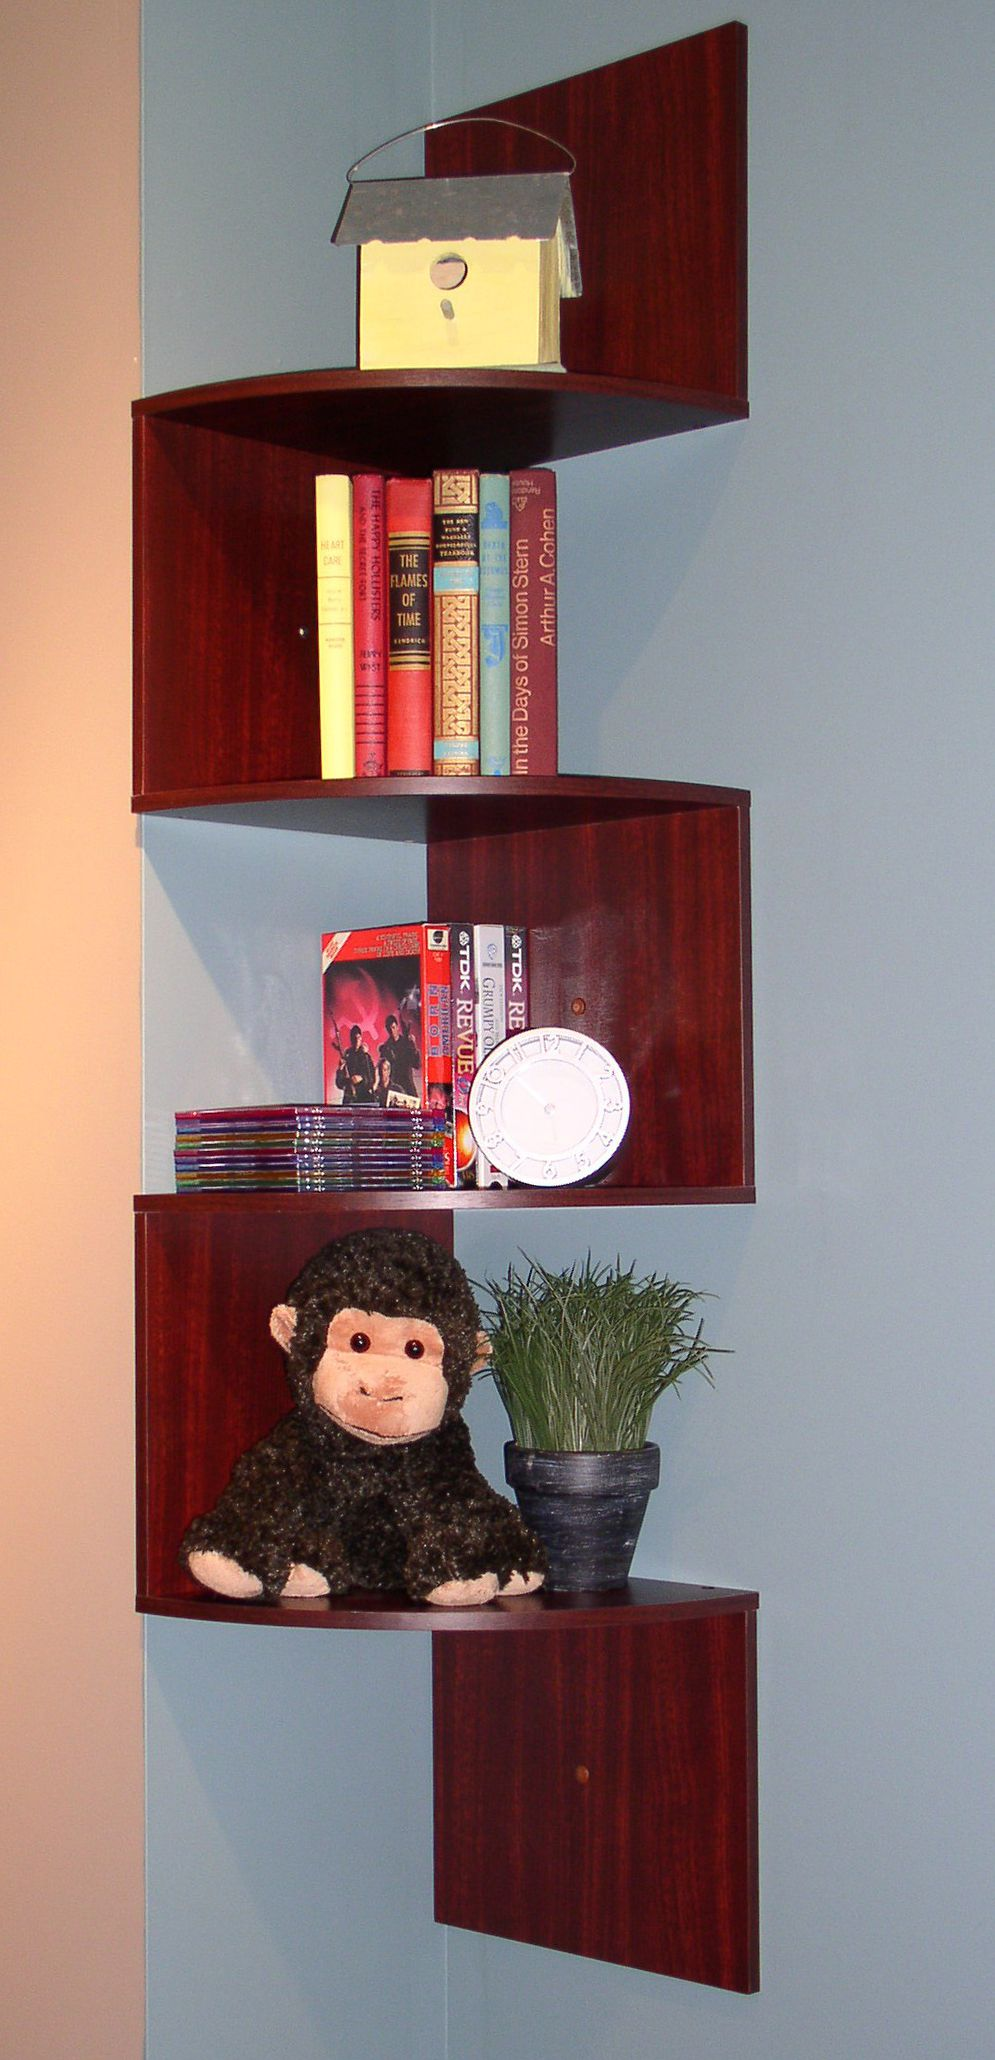 Marvelous Design Of The Blue Wall Added With Brown Wooden Shelves Corner Ideas With Some Books Ideas